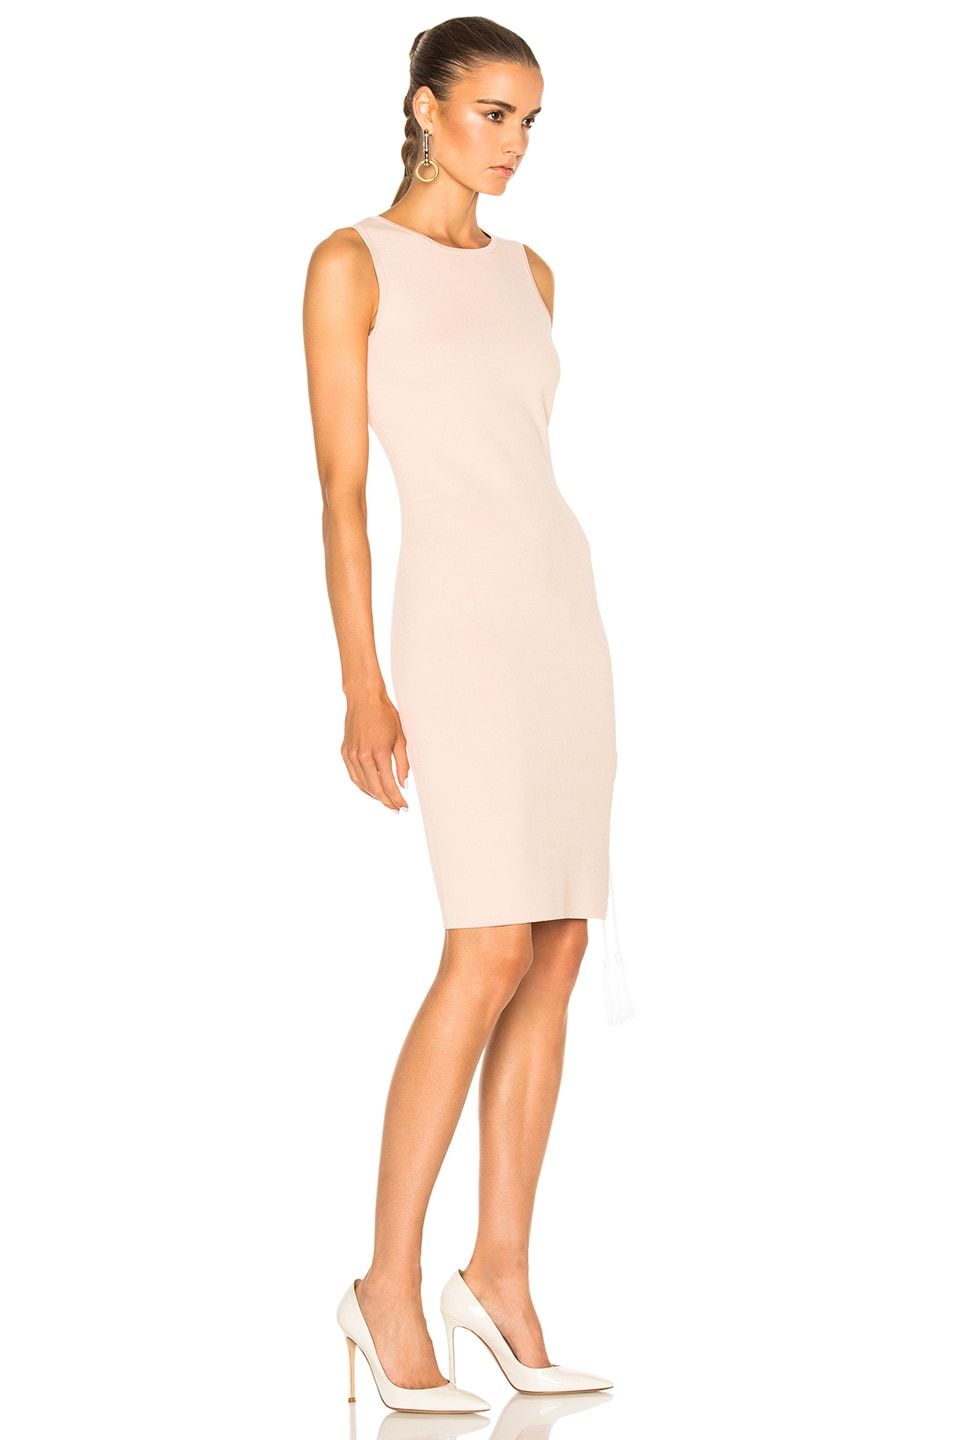 Image 3 of JONATHAN SIMKHAI for FWRD Knit Lace-up Dress in Nude